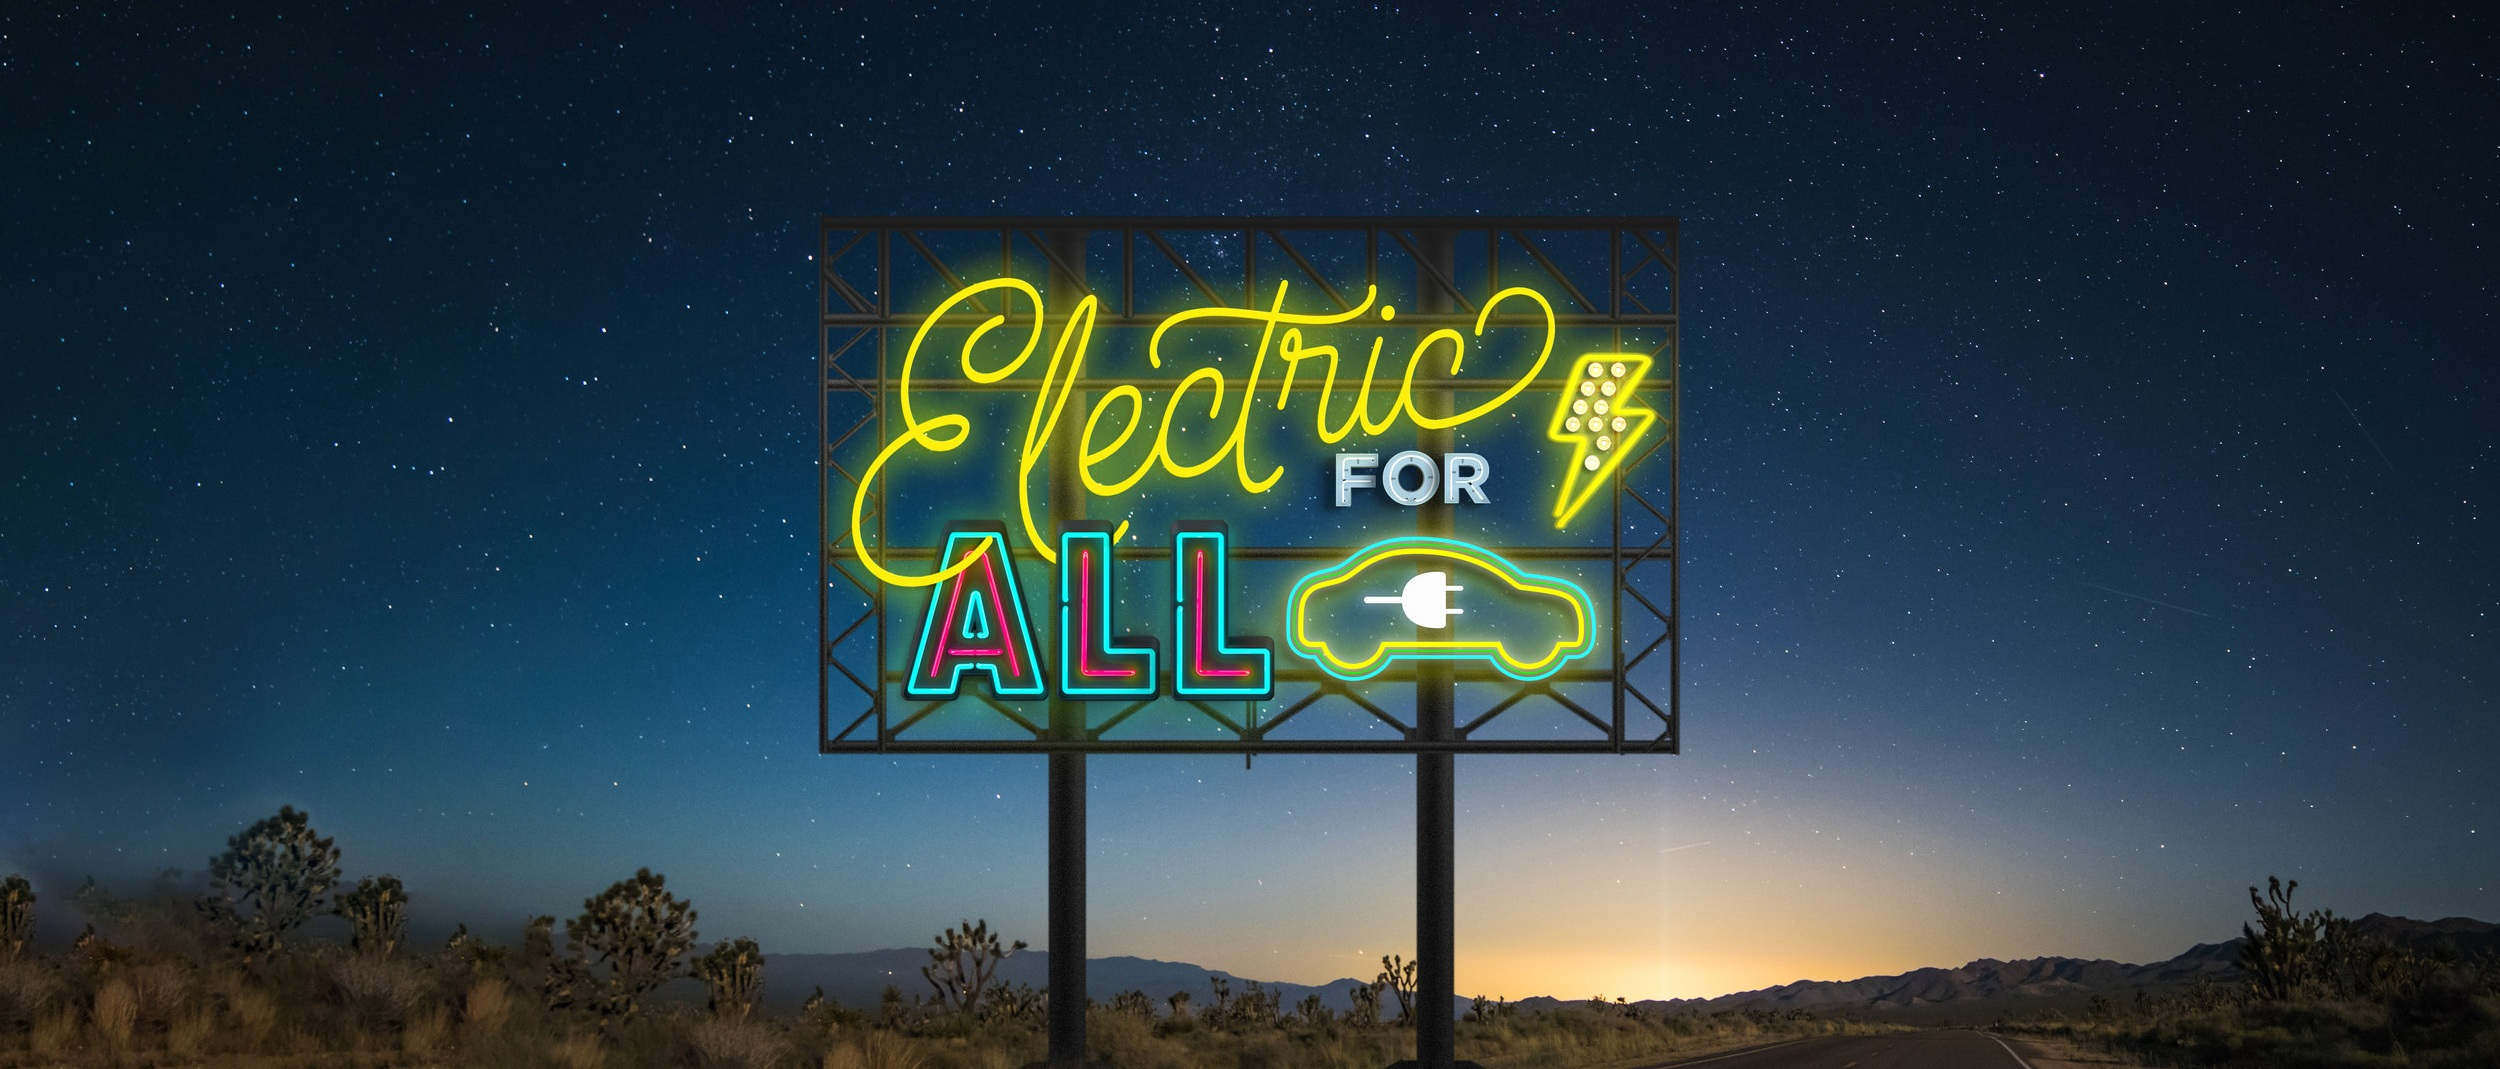 NEW WORK: The California Electric Car Coalition